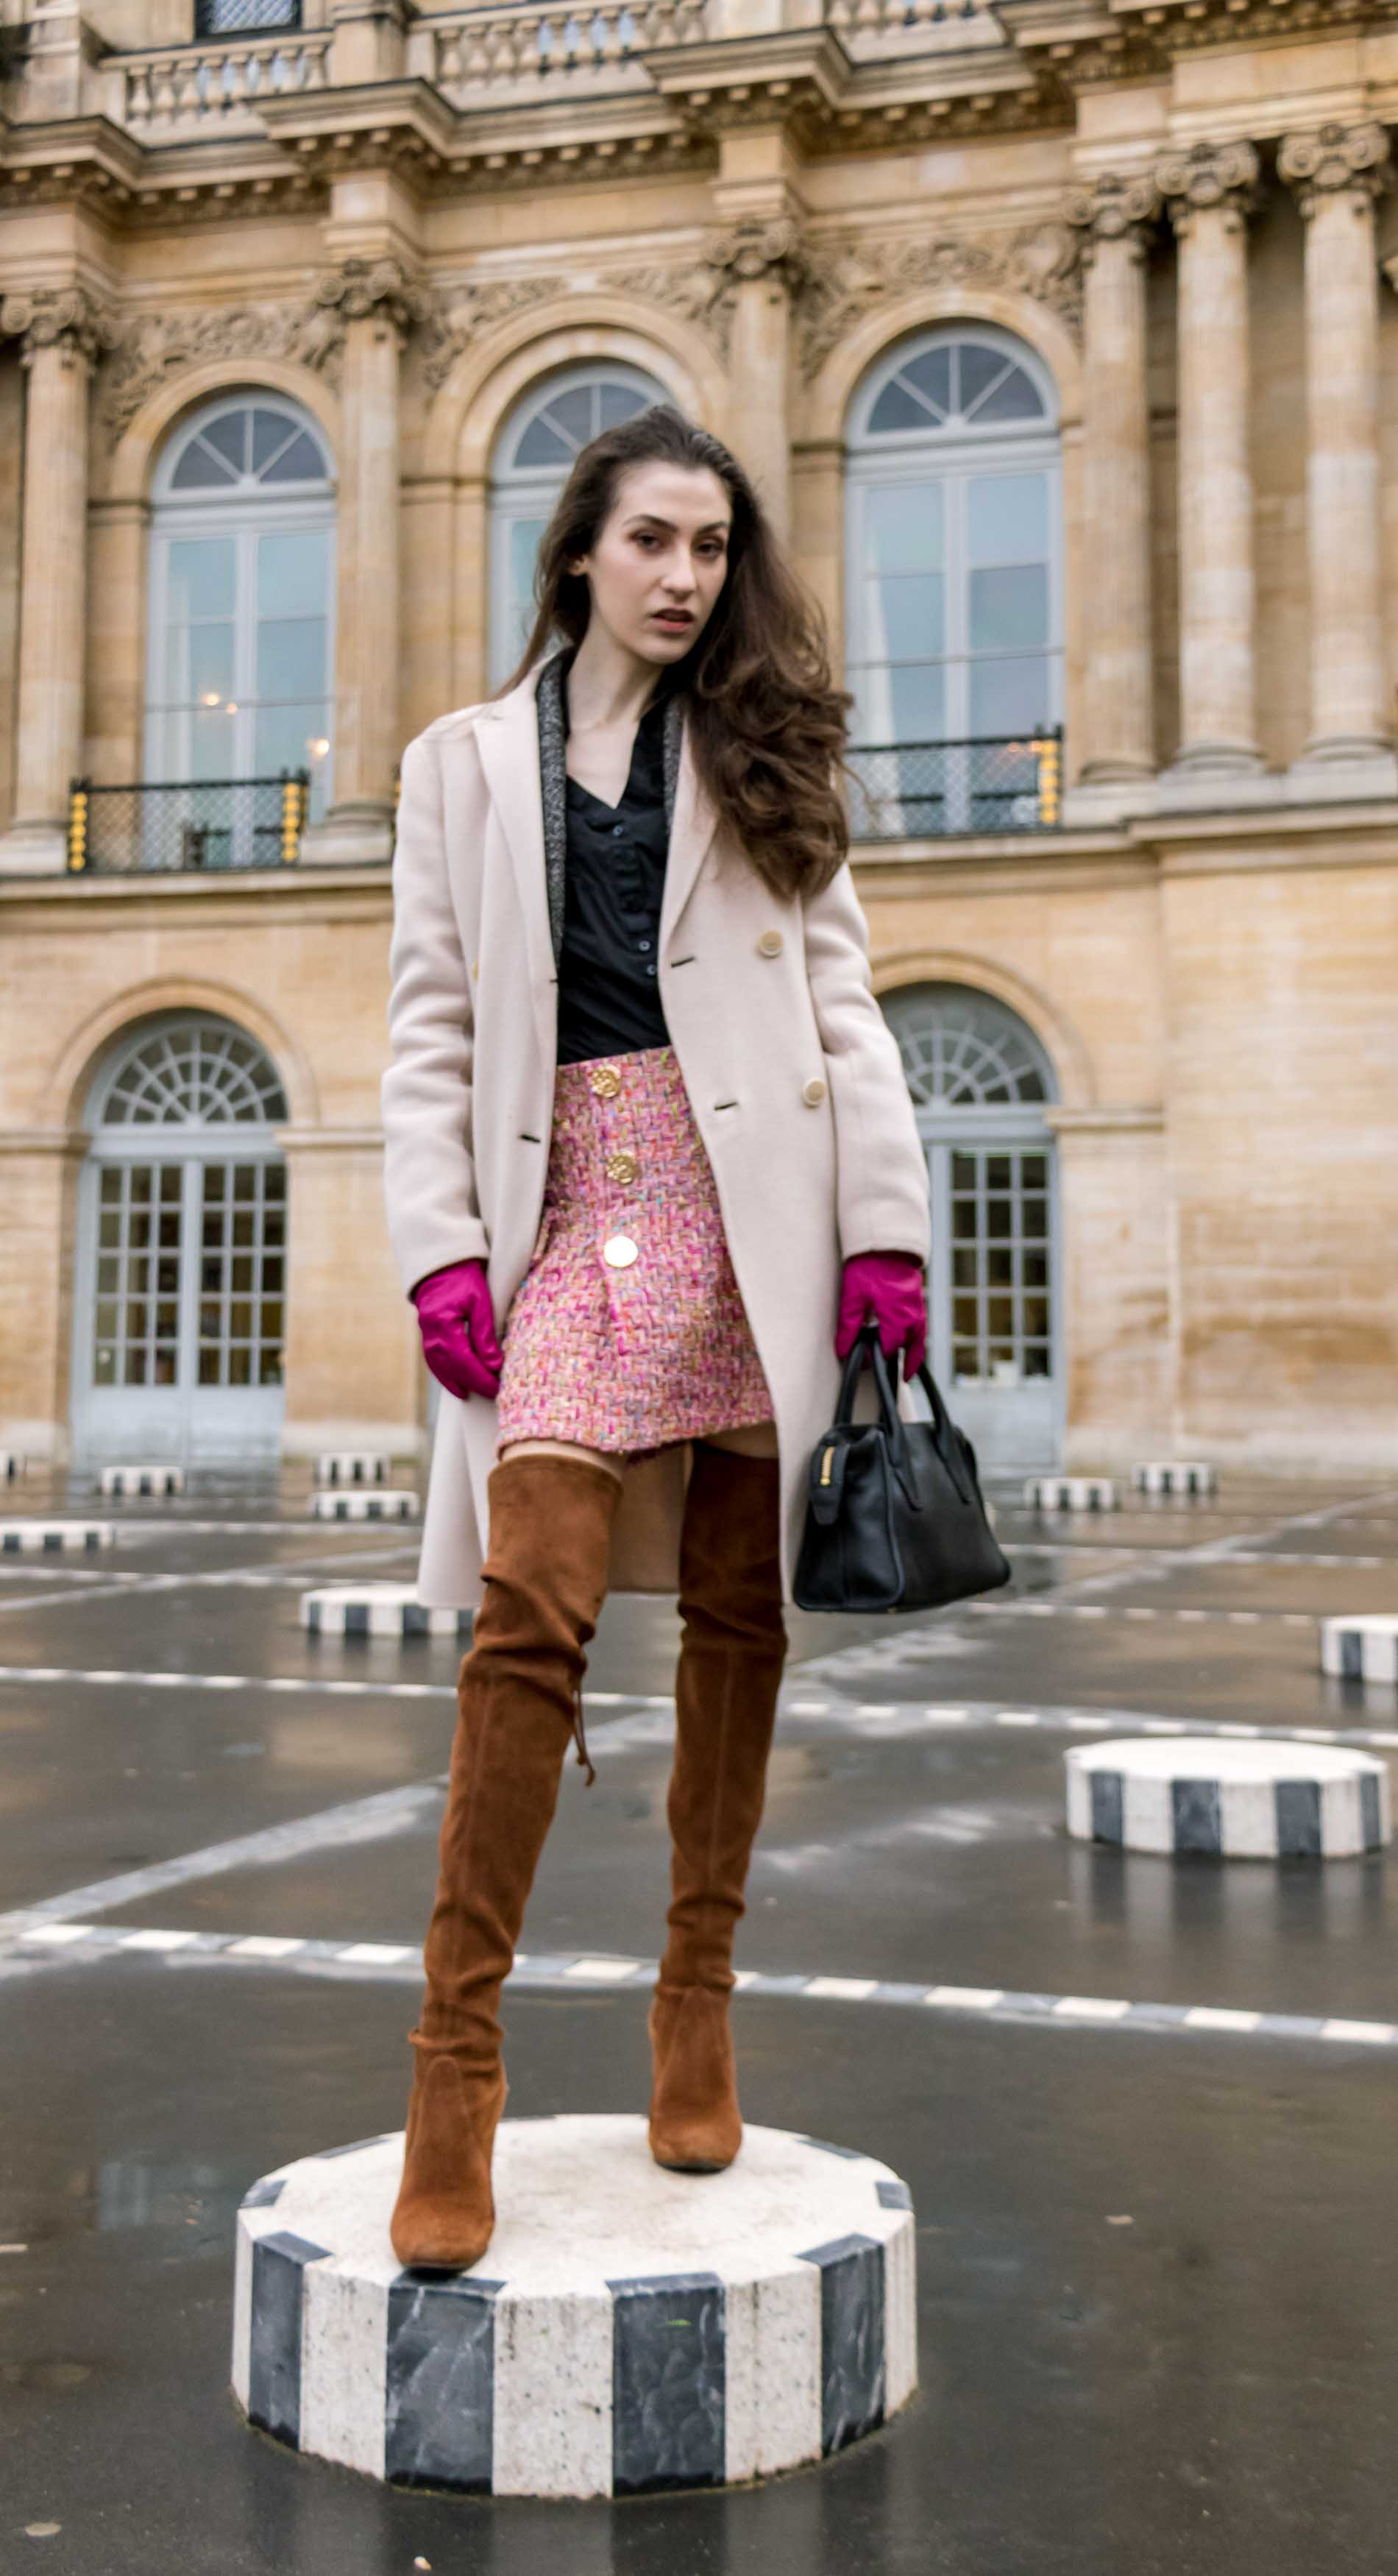 Fashion Blogger Veronika Lipar of Brunette from Wall Street wearing Stuart Weitzman over the knee boots, Weekend Maxmara coat, Storets pink tweed shorts, black shirt, pink leather gloves and black small bag during Paris fashion week autumn winter 2018/19 standing on Les Colonnes de Buren